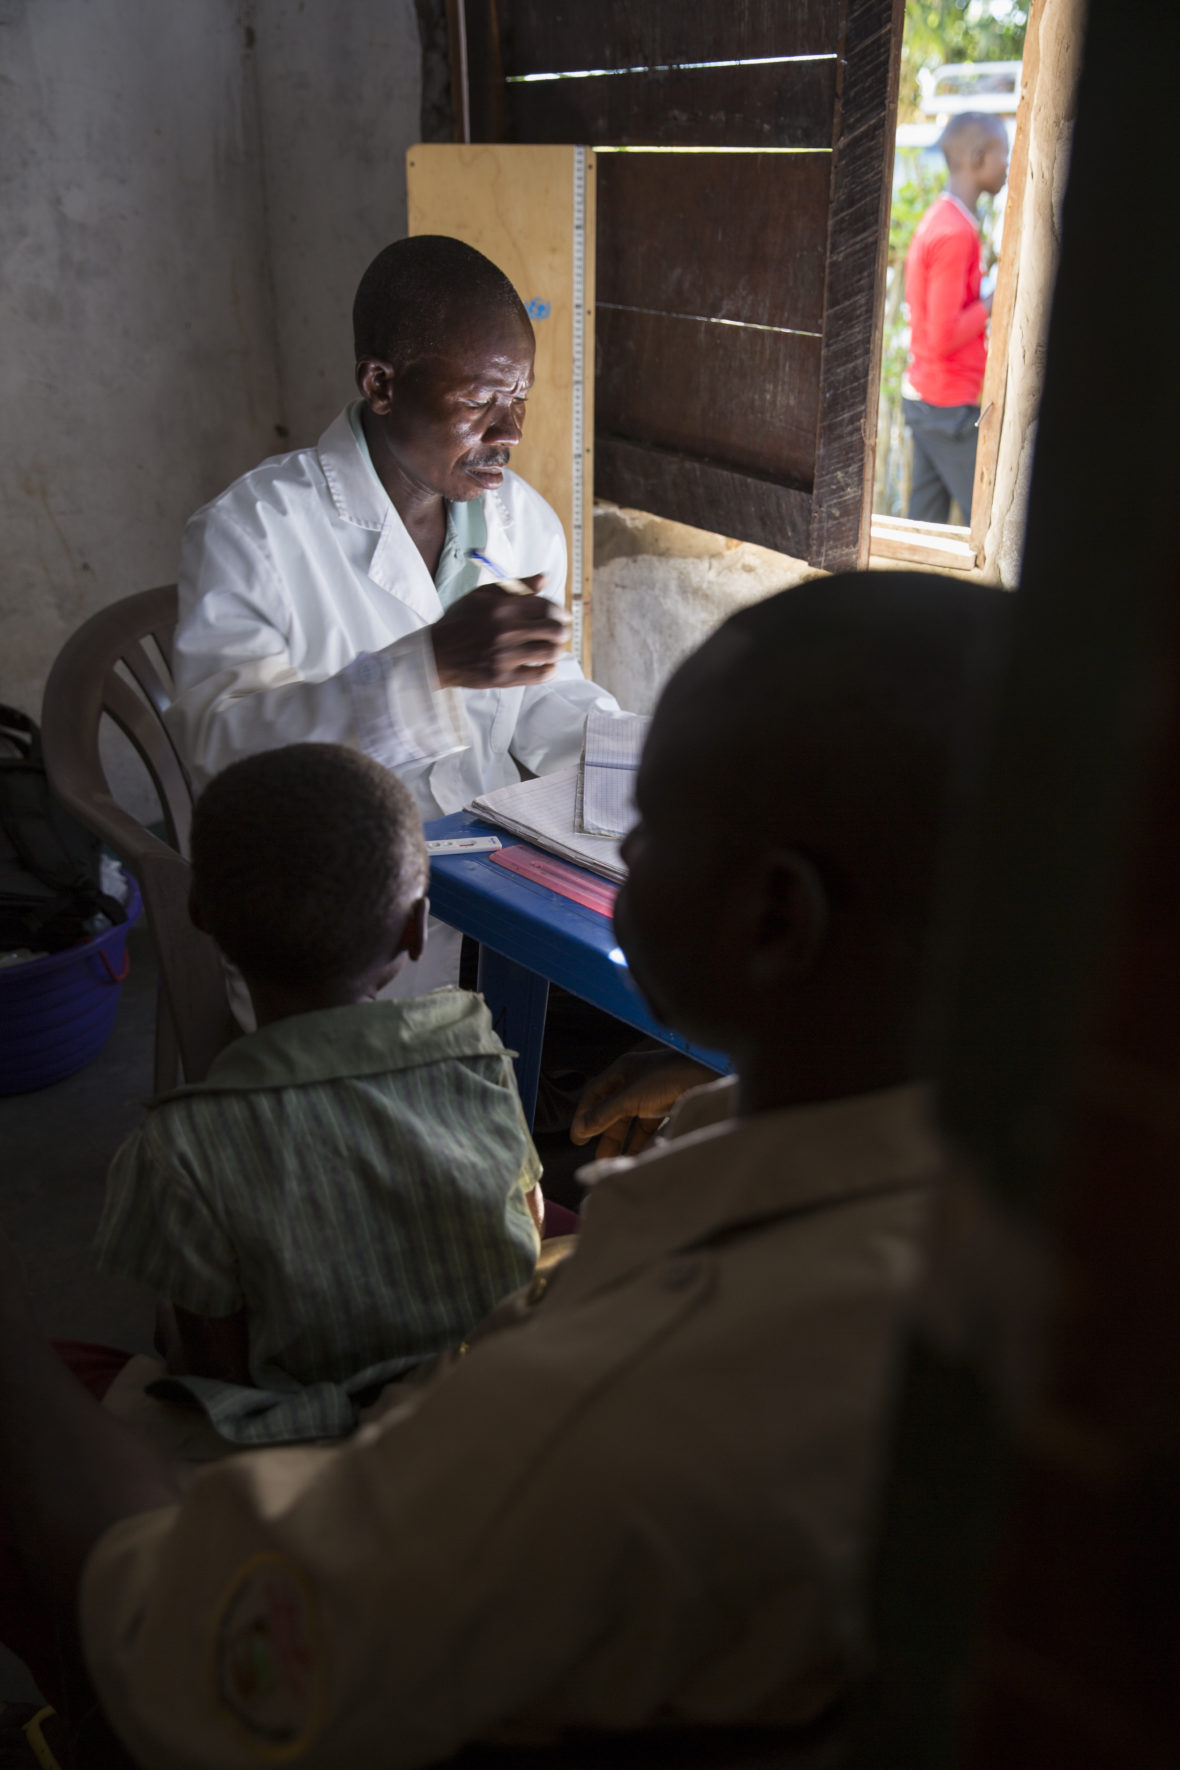 Dbuyu Kalembe, a medic, sits in his clinic with a man and a young boy